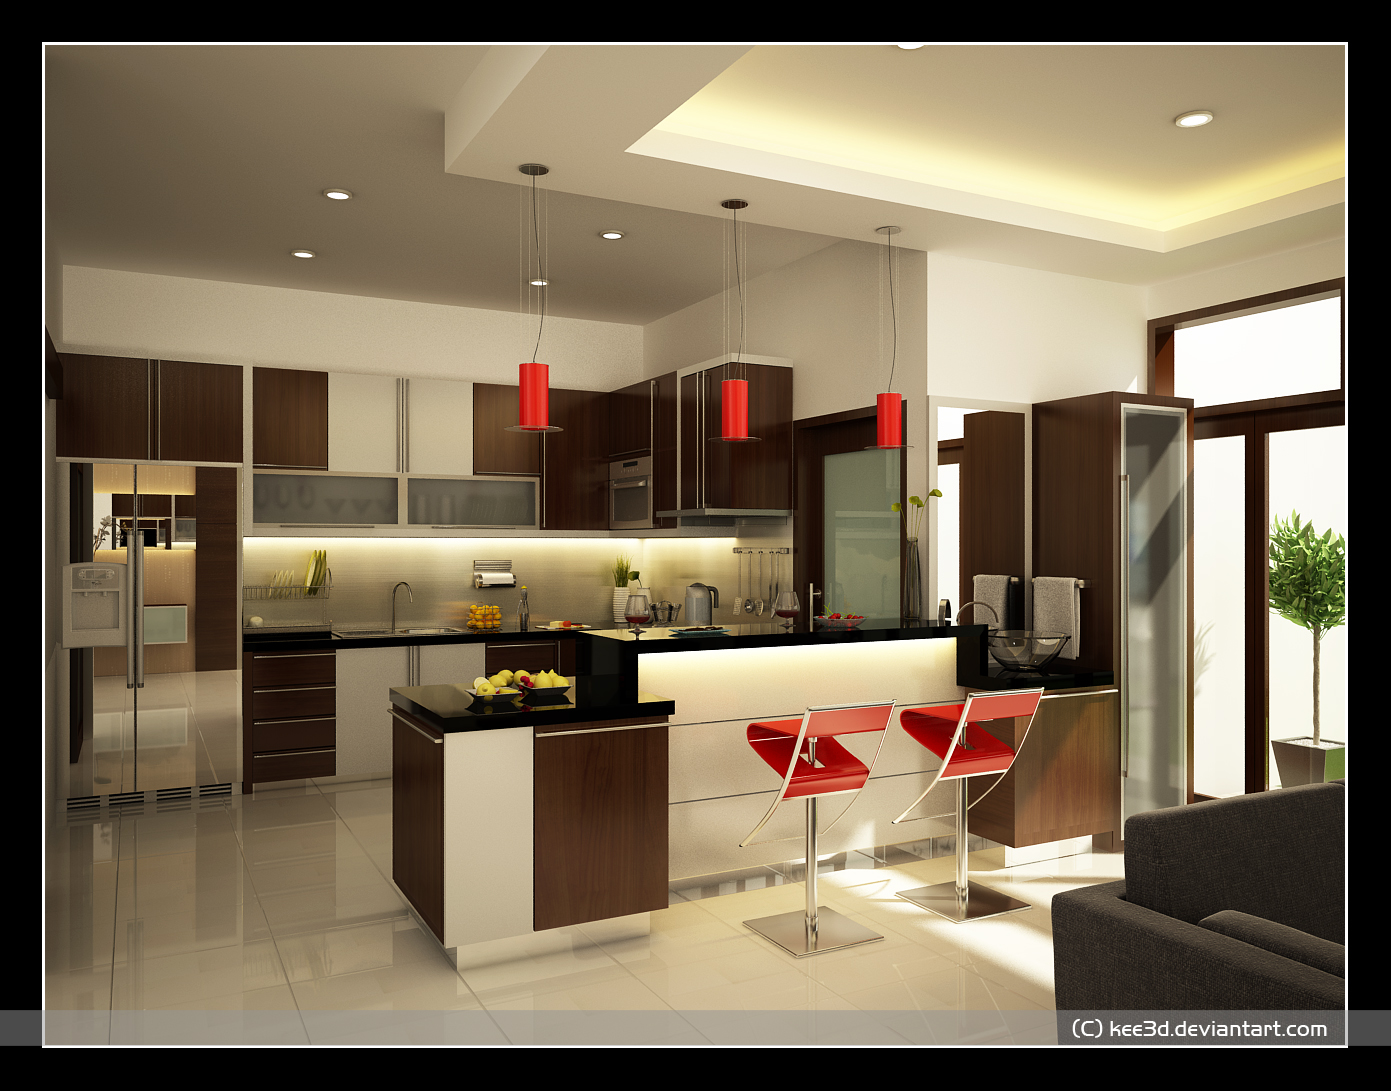 Kitchen design ideas for Style at home kitchen ideas